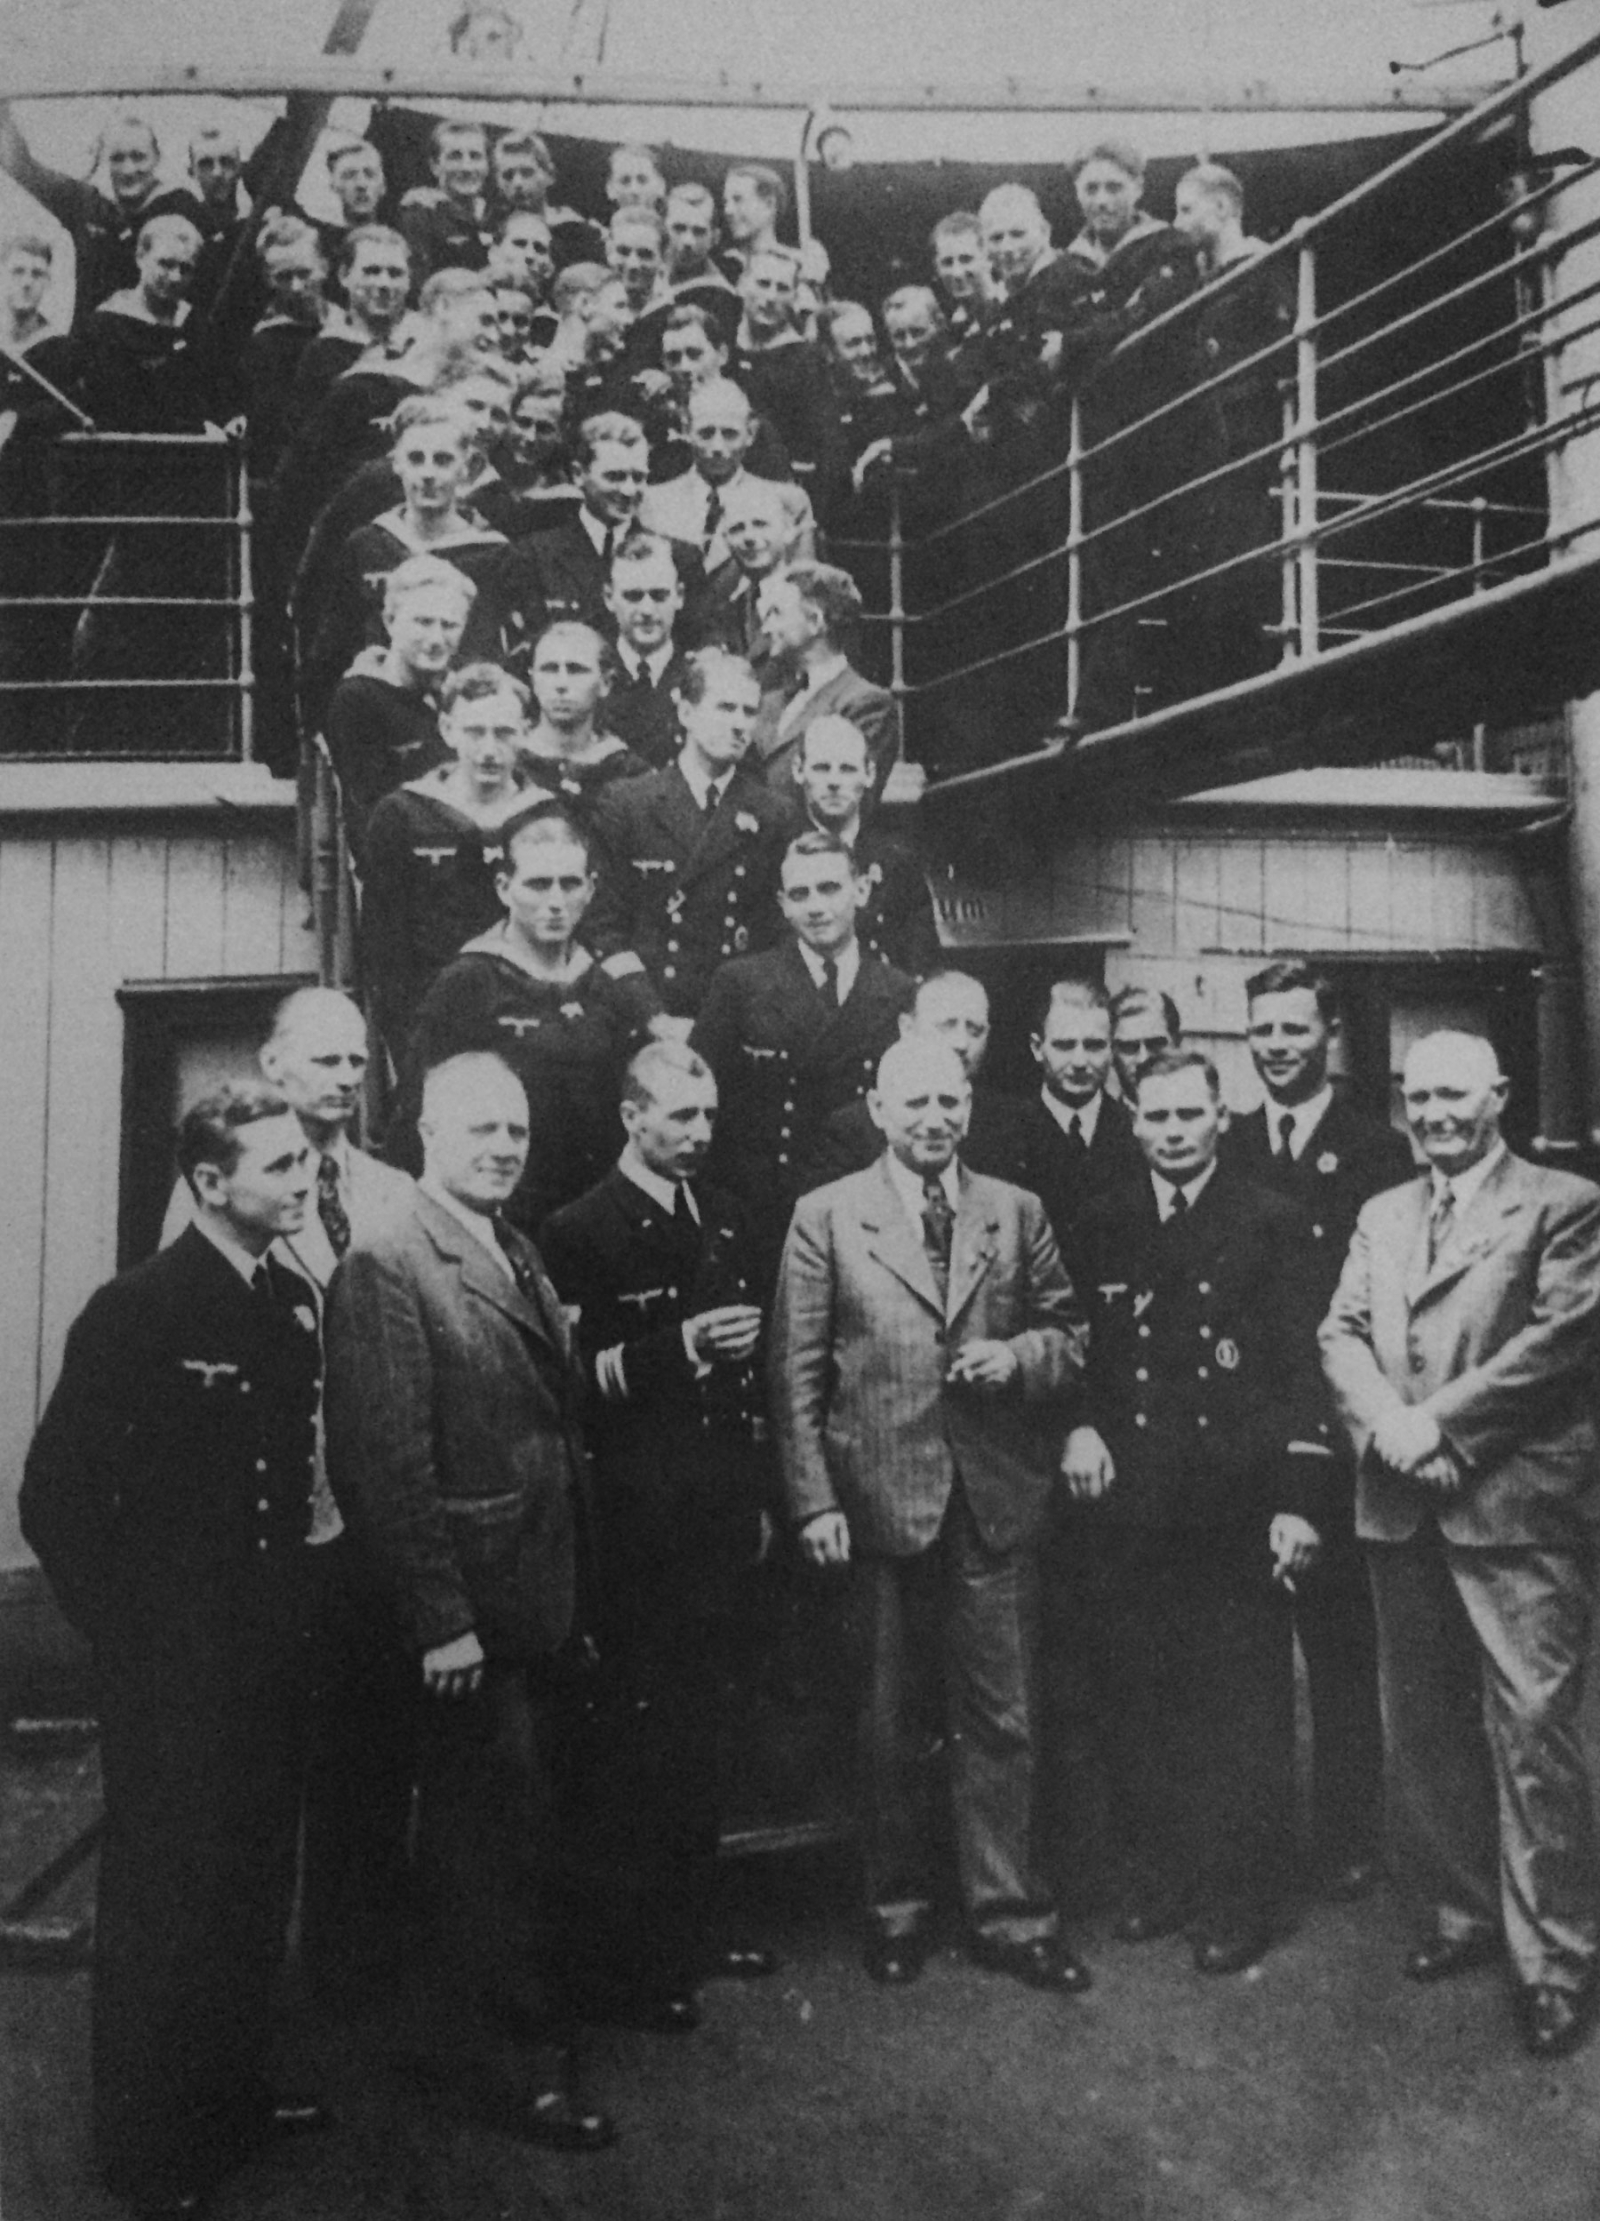 The crew of the U-576 submarine